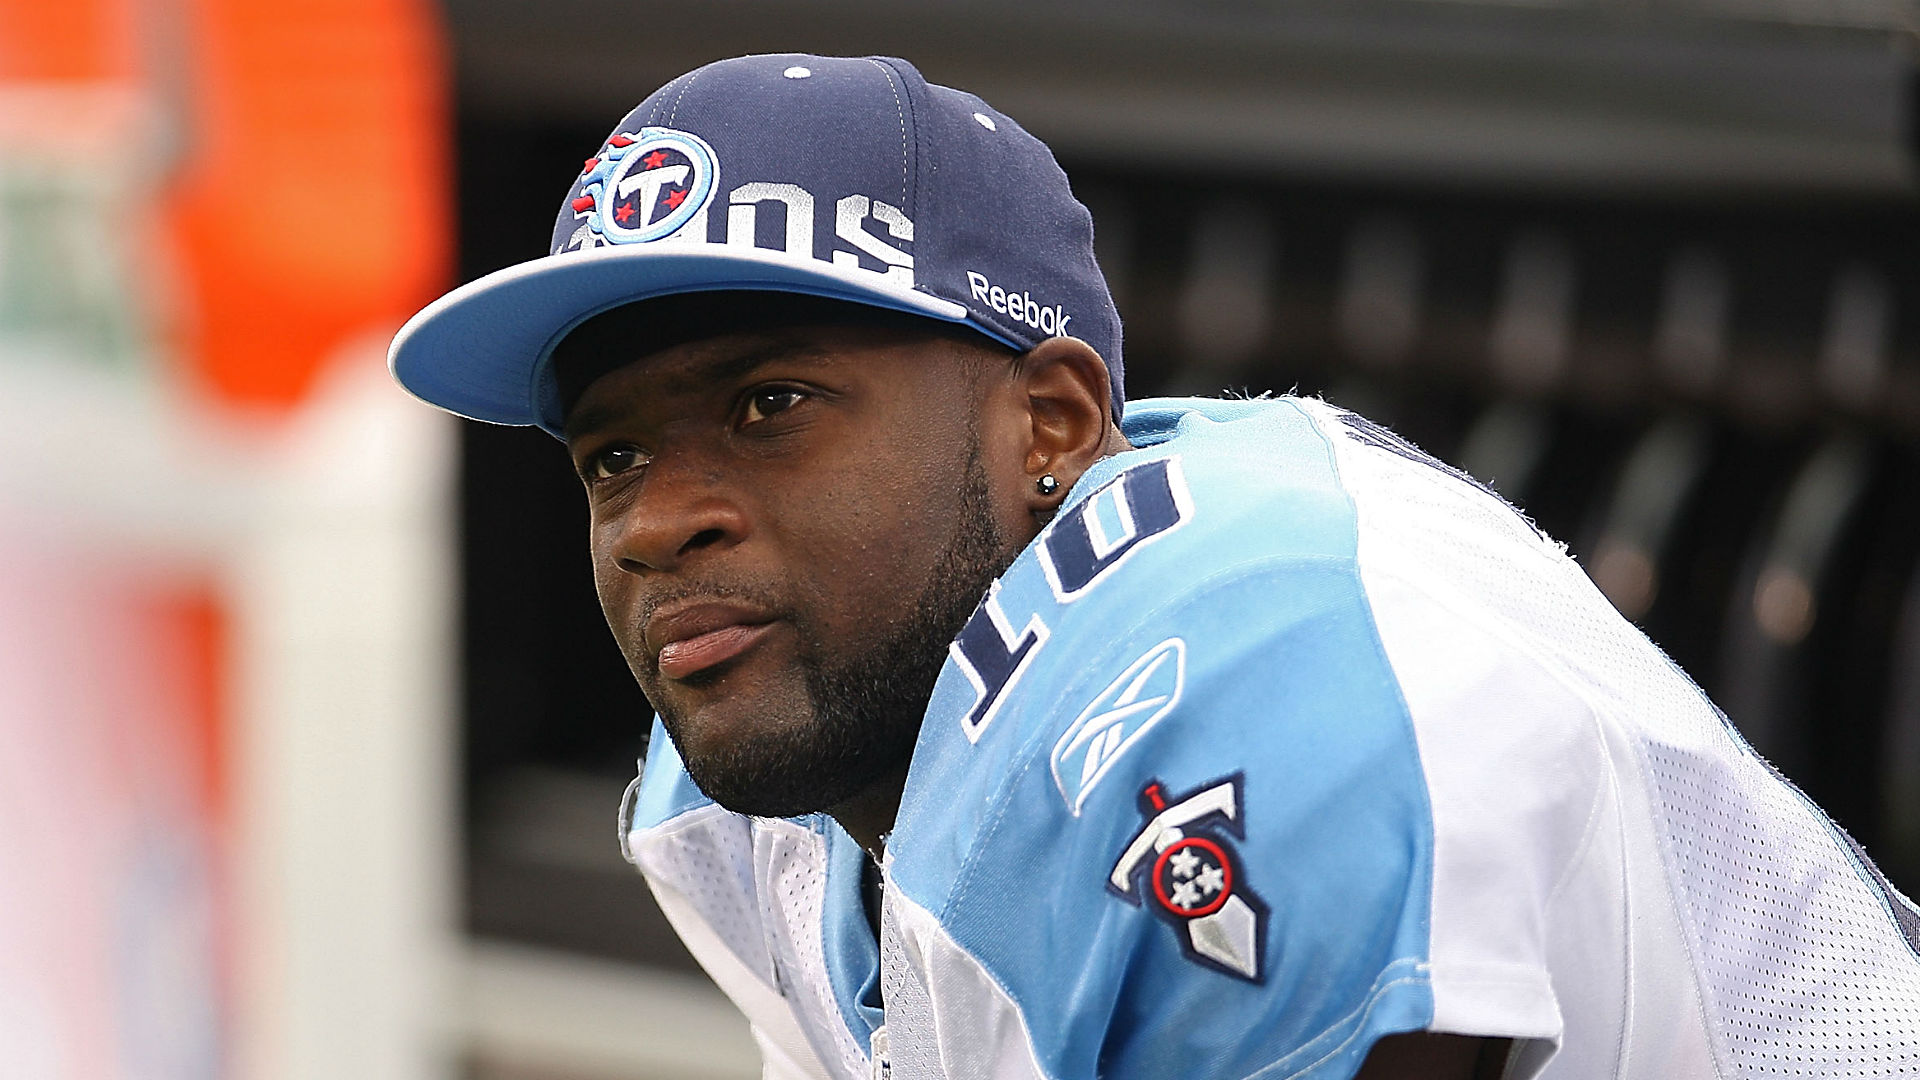 Vince-young-titans-getty-ftr-12616_1s7lyxzck5m6r18nw4unkn0dn2